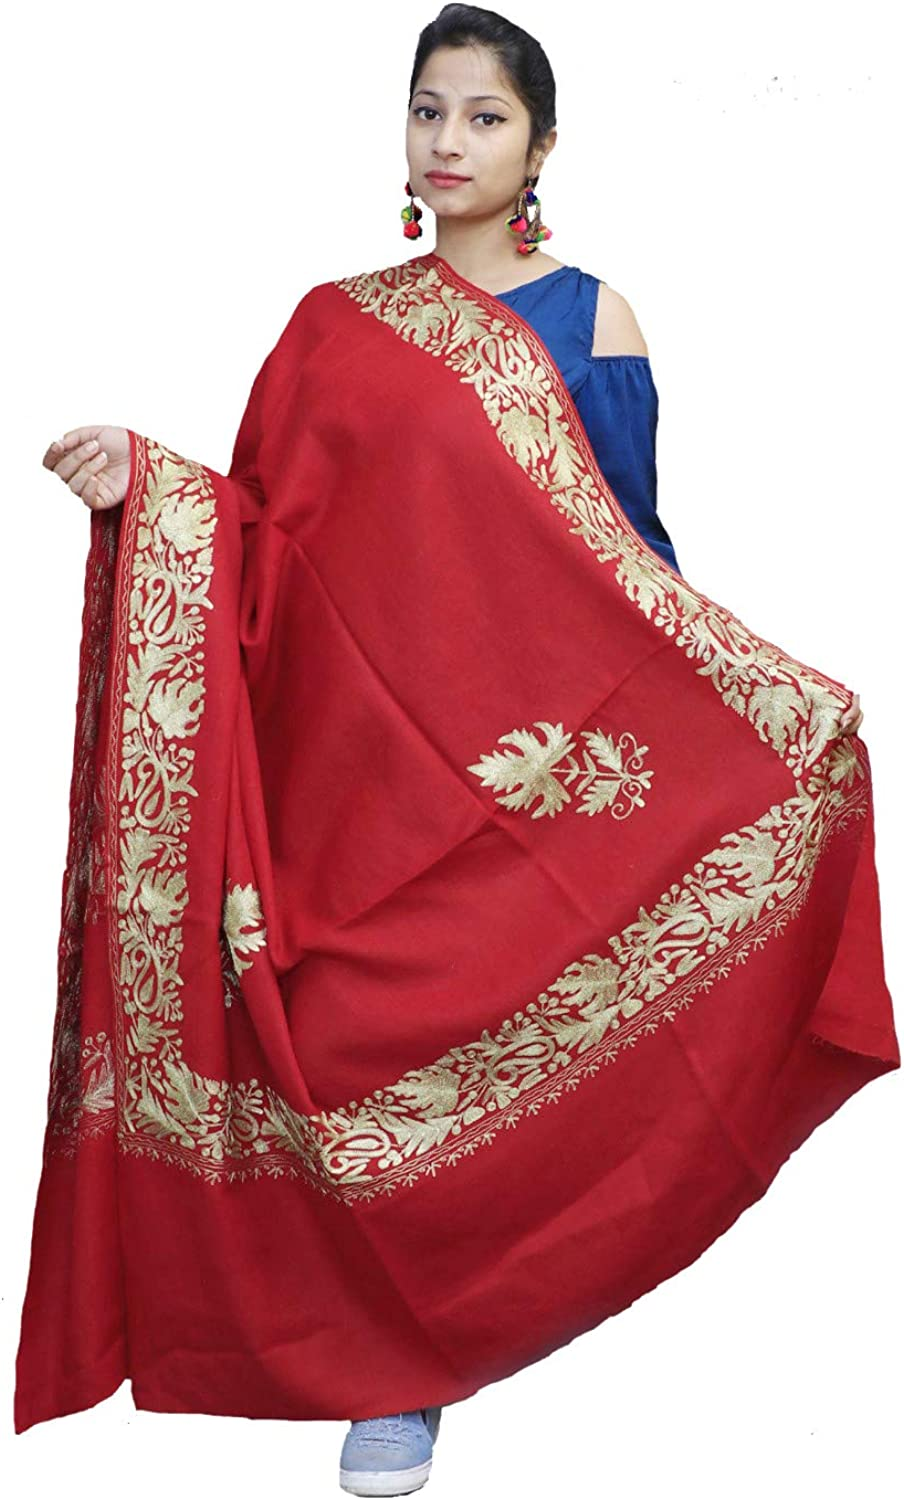 Kashmirvilla Abondon Maroon Semi Pashmina Shawl Enriched With Ethnic Tilla Embroidery With four sided Border